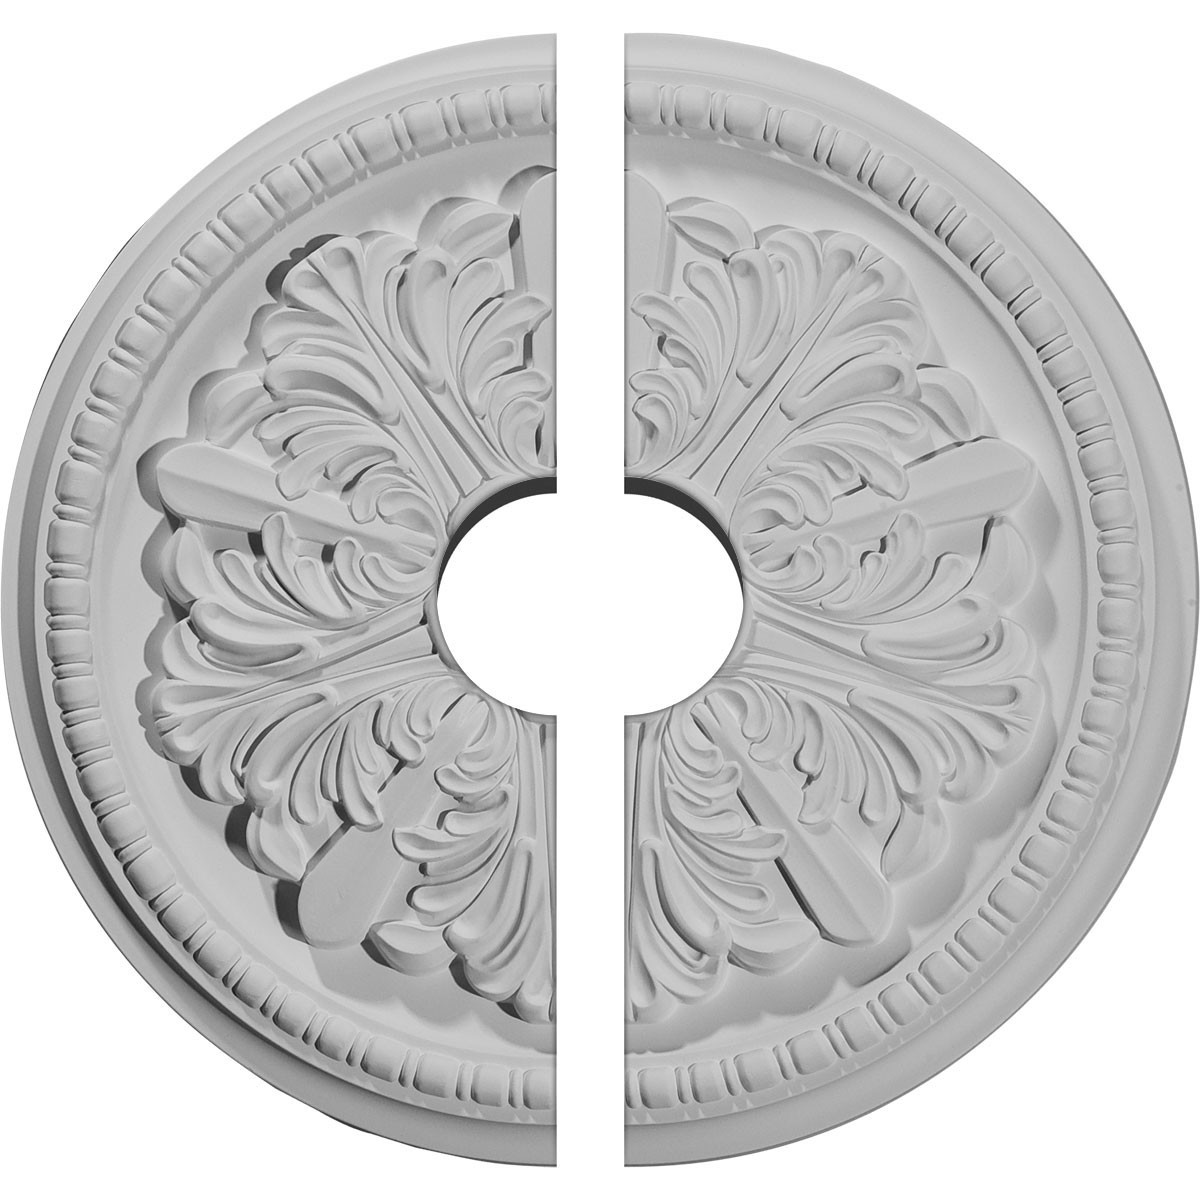 "EM-CM16SW2-03500 - 16 7/8""OD x 3 1/2""ID x 1 1/2""P Swindon Ceiling Medallion, Two Piece (Fits Canopies up to 3 1/2"")"